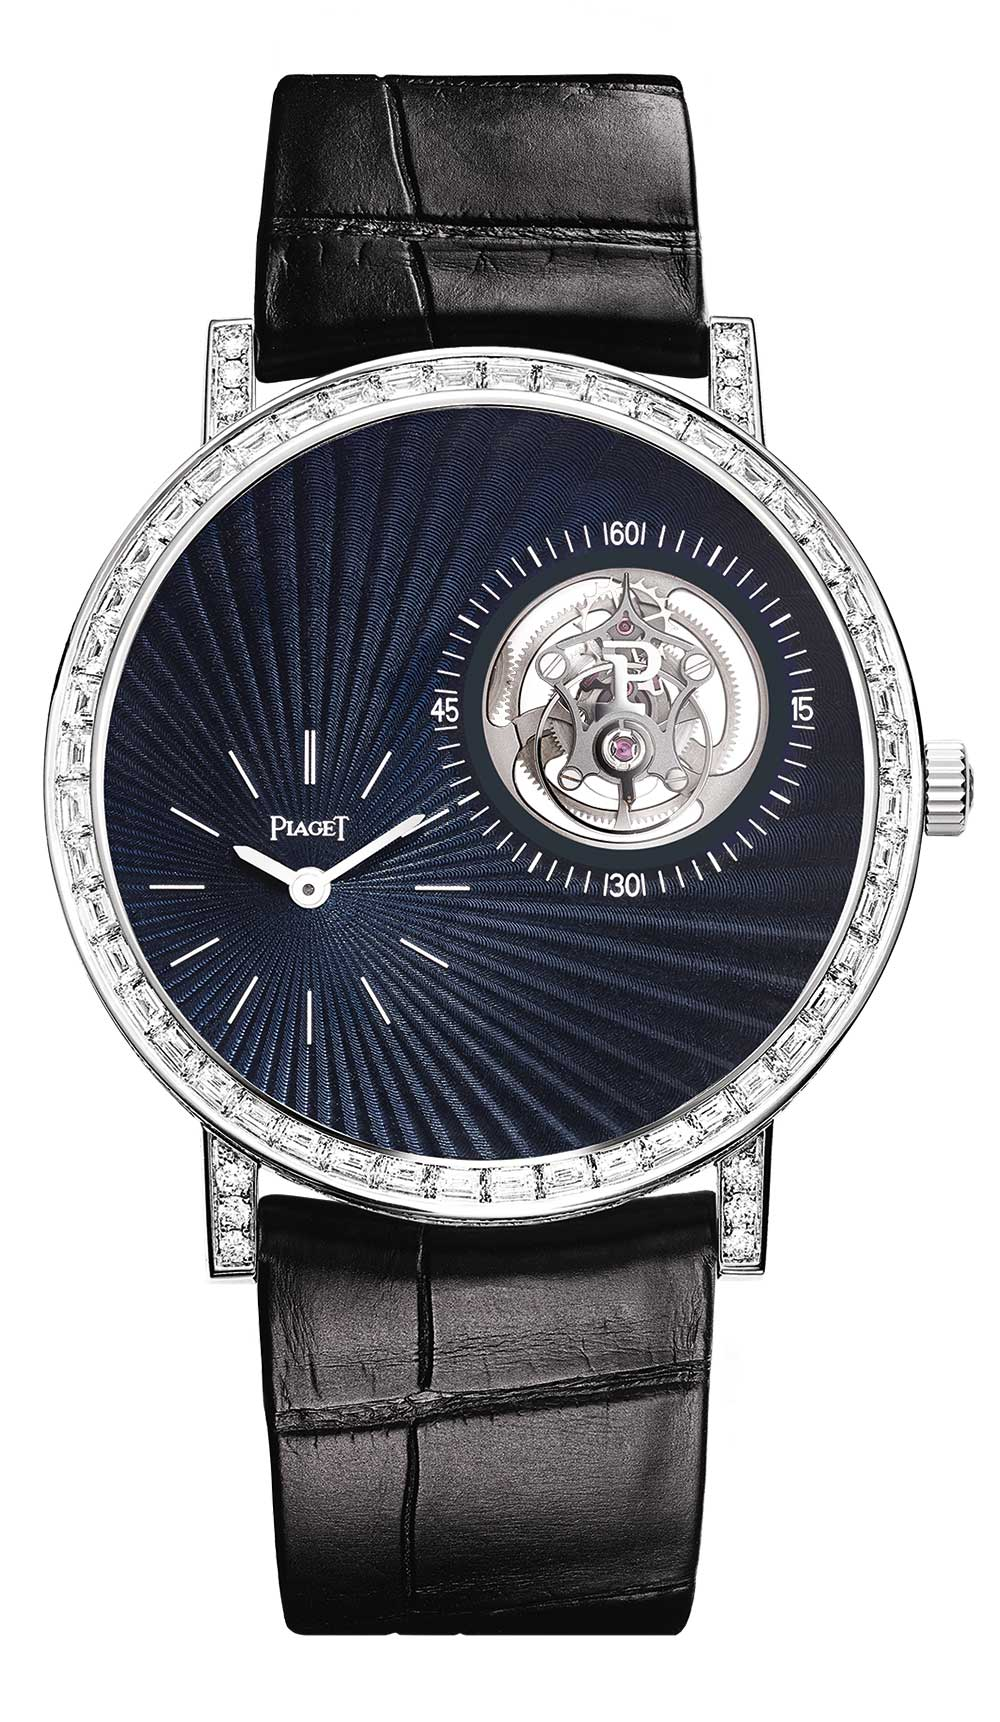 Piaget Altiplano Tourbillon High Jewellery G0A42204, front view